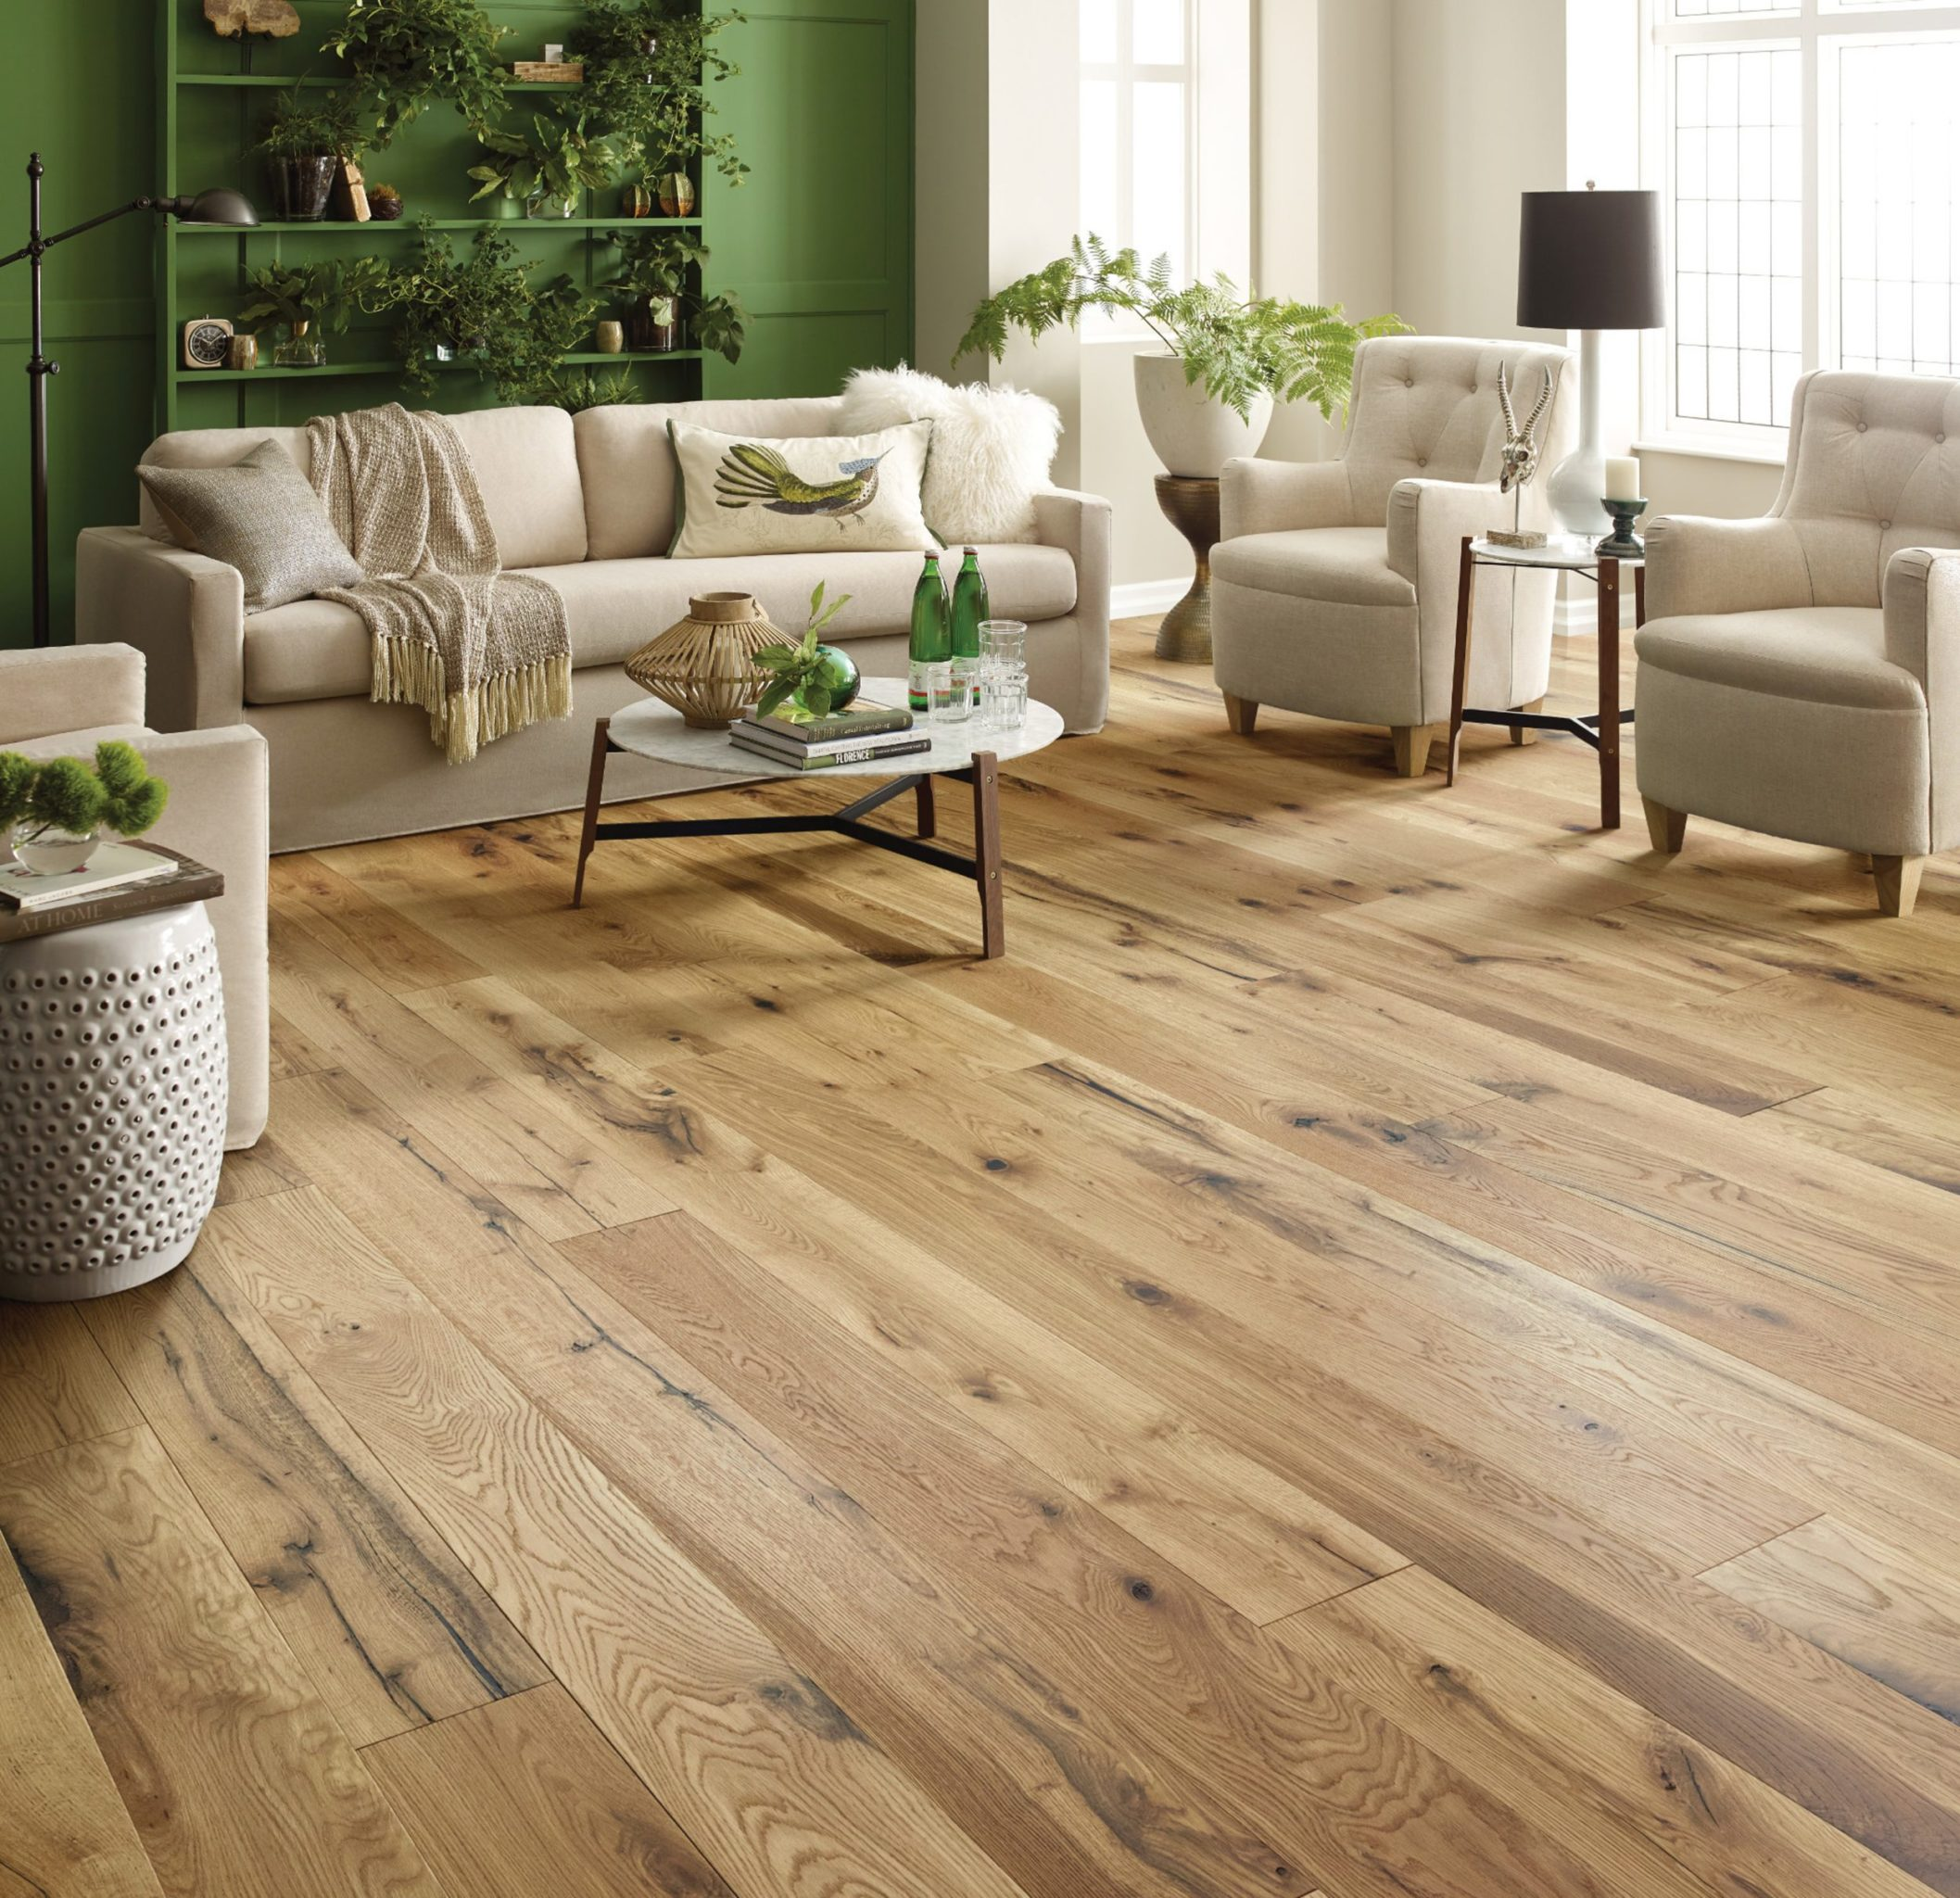 ReflectionsWhiteOak-SW661-01079-Natural-7in-2W765-RM-V